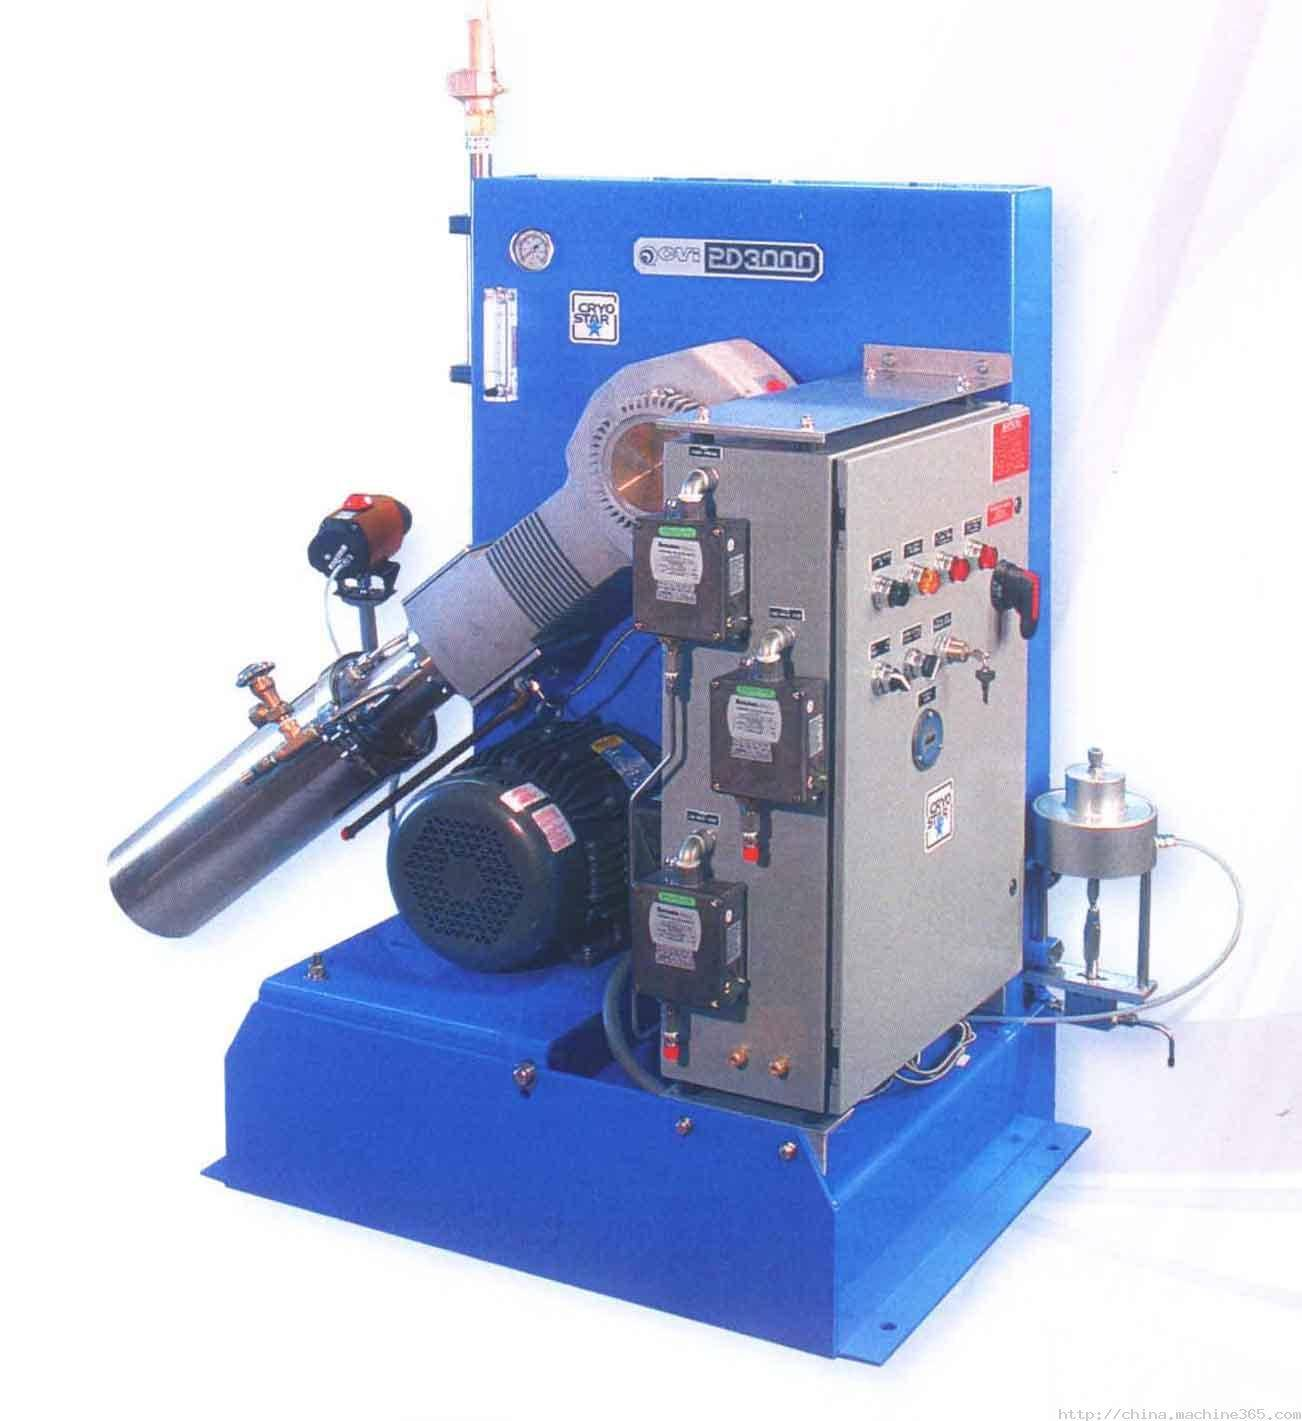 The French PD3000 cryogenic pump - Yahweh pays attention to service and quality